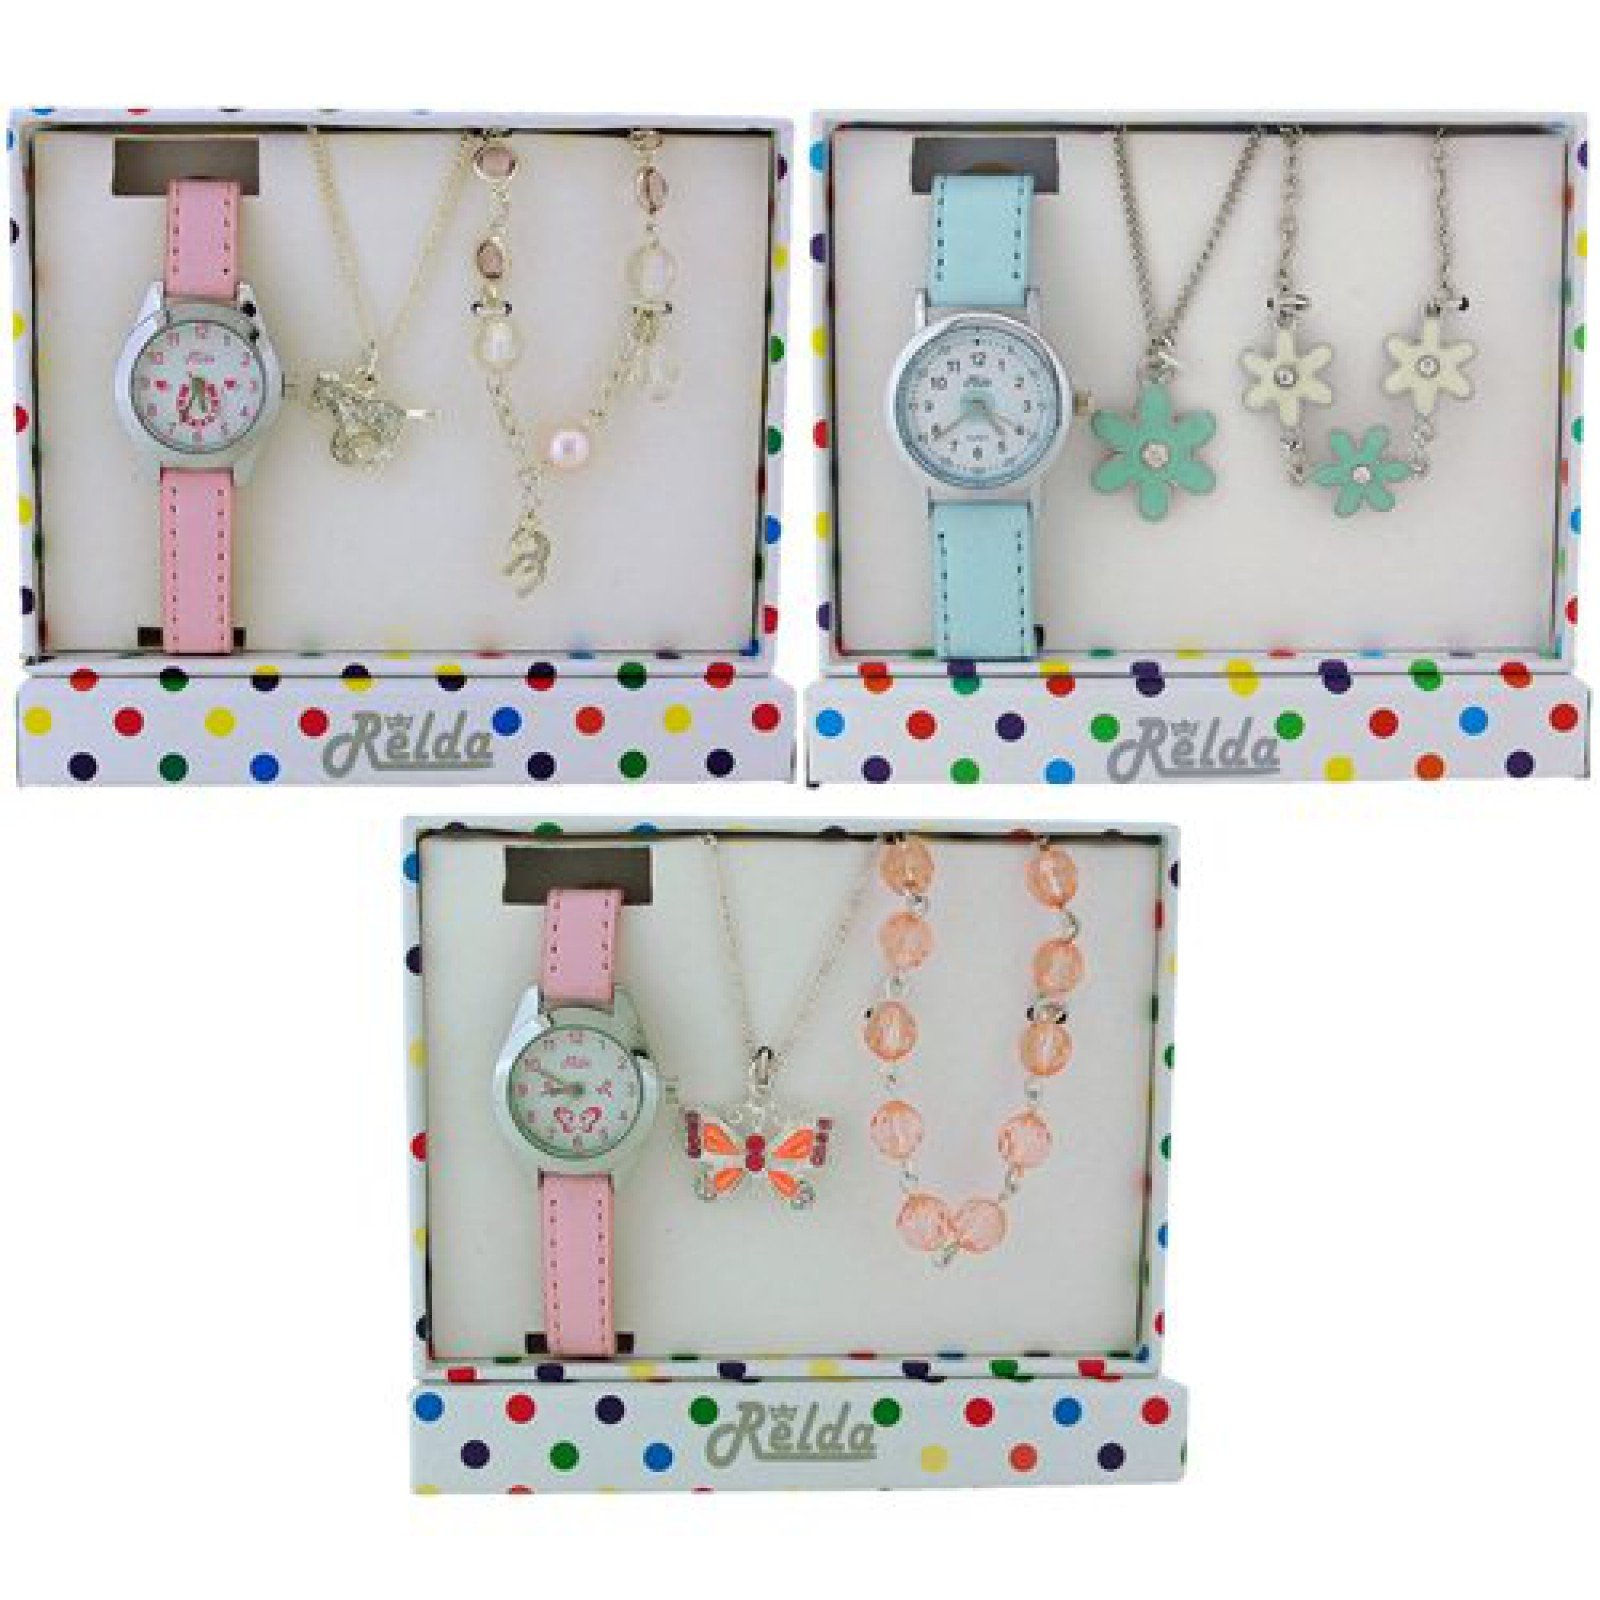 Relda Kids Watch & Jewellery Gift Set - Pack of 3 Designs Rel53